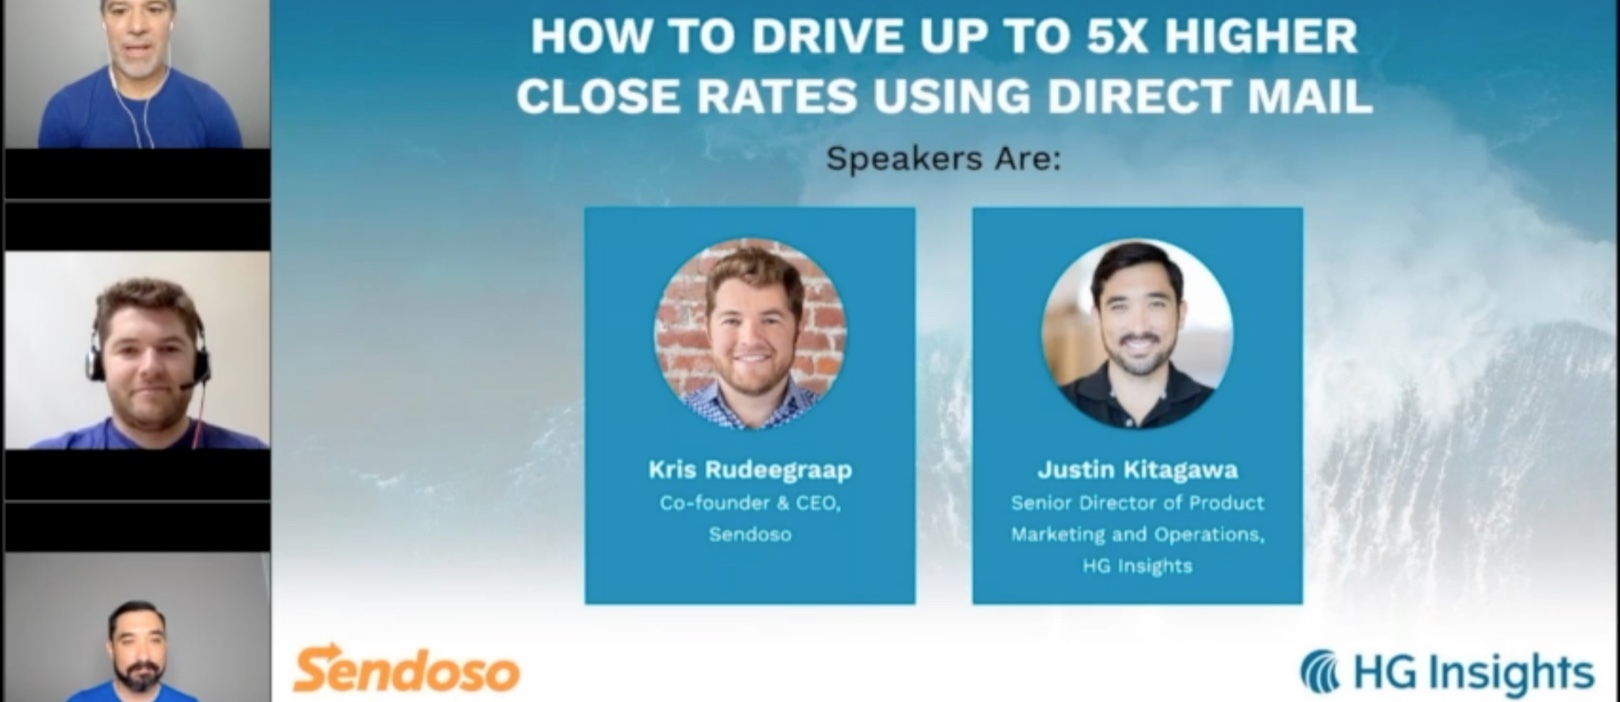 How to Drive up to 5x Higher Close Rates Using Direct Mail